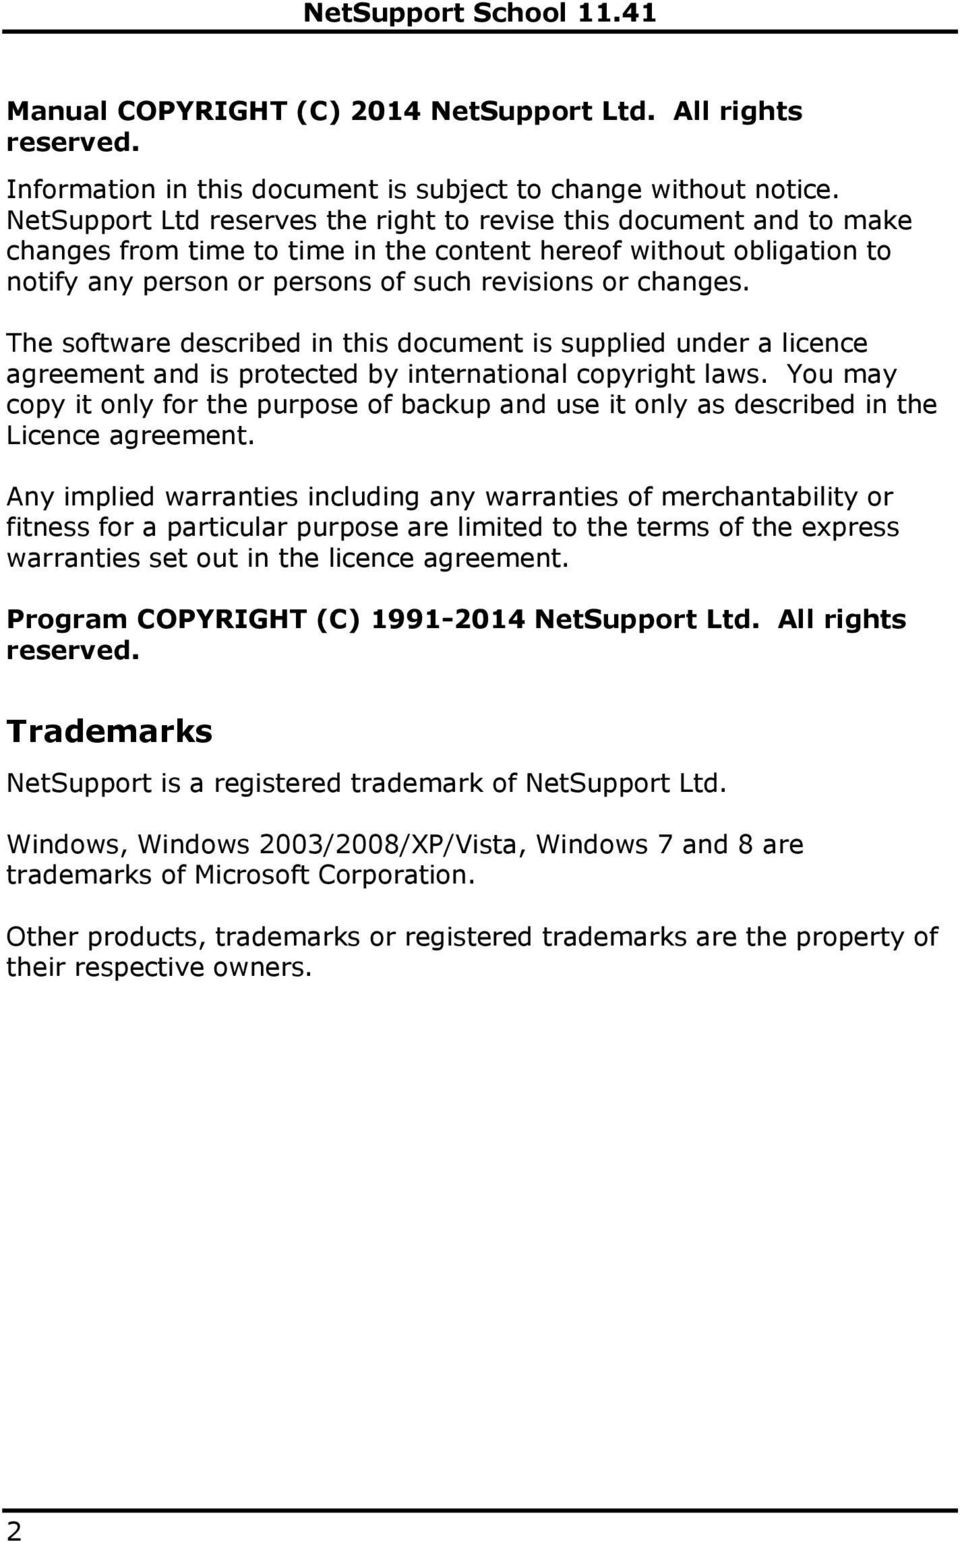 The software described in this document is supplied under a licence agreement and is protected by international copyright laws.